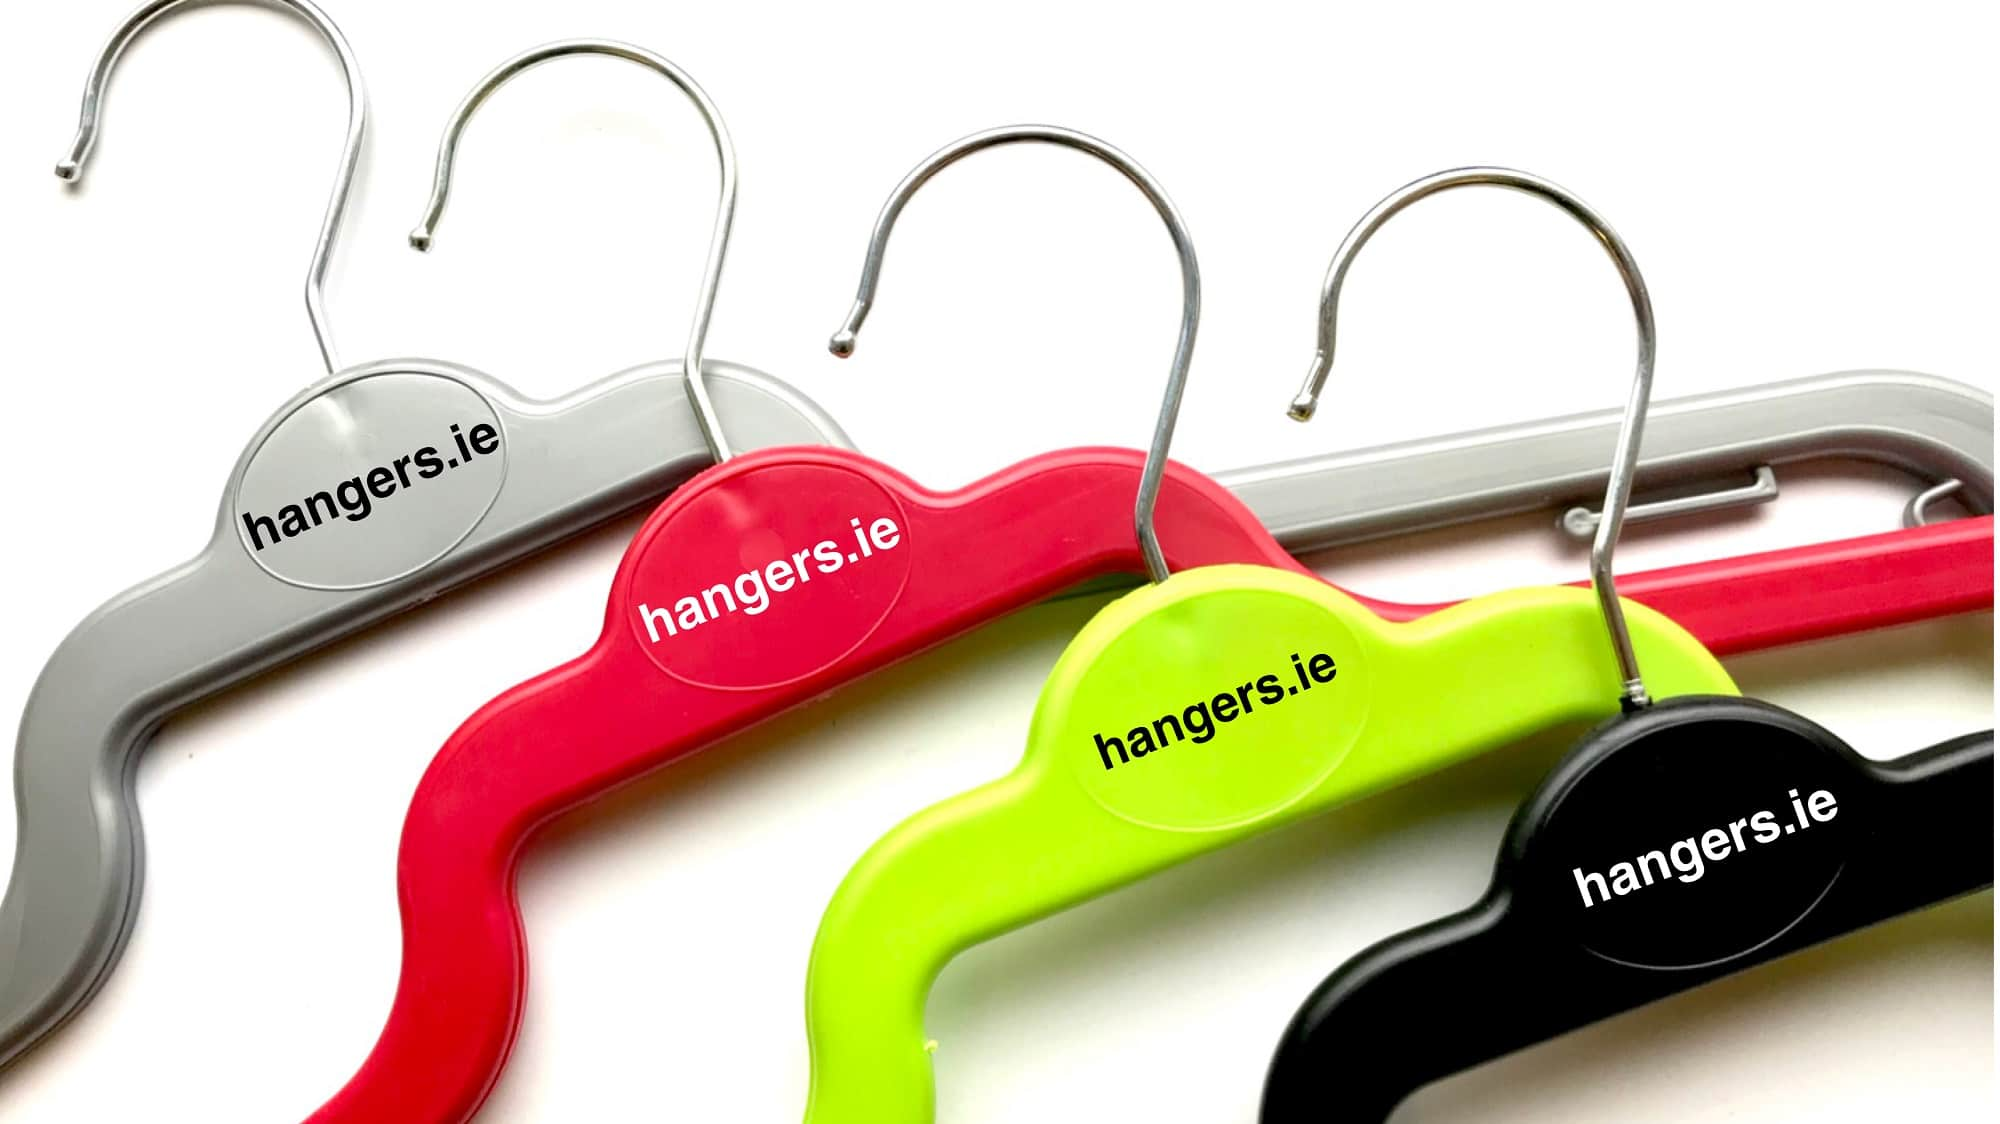 Printed clothes hangers